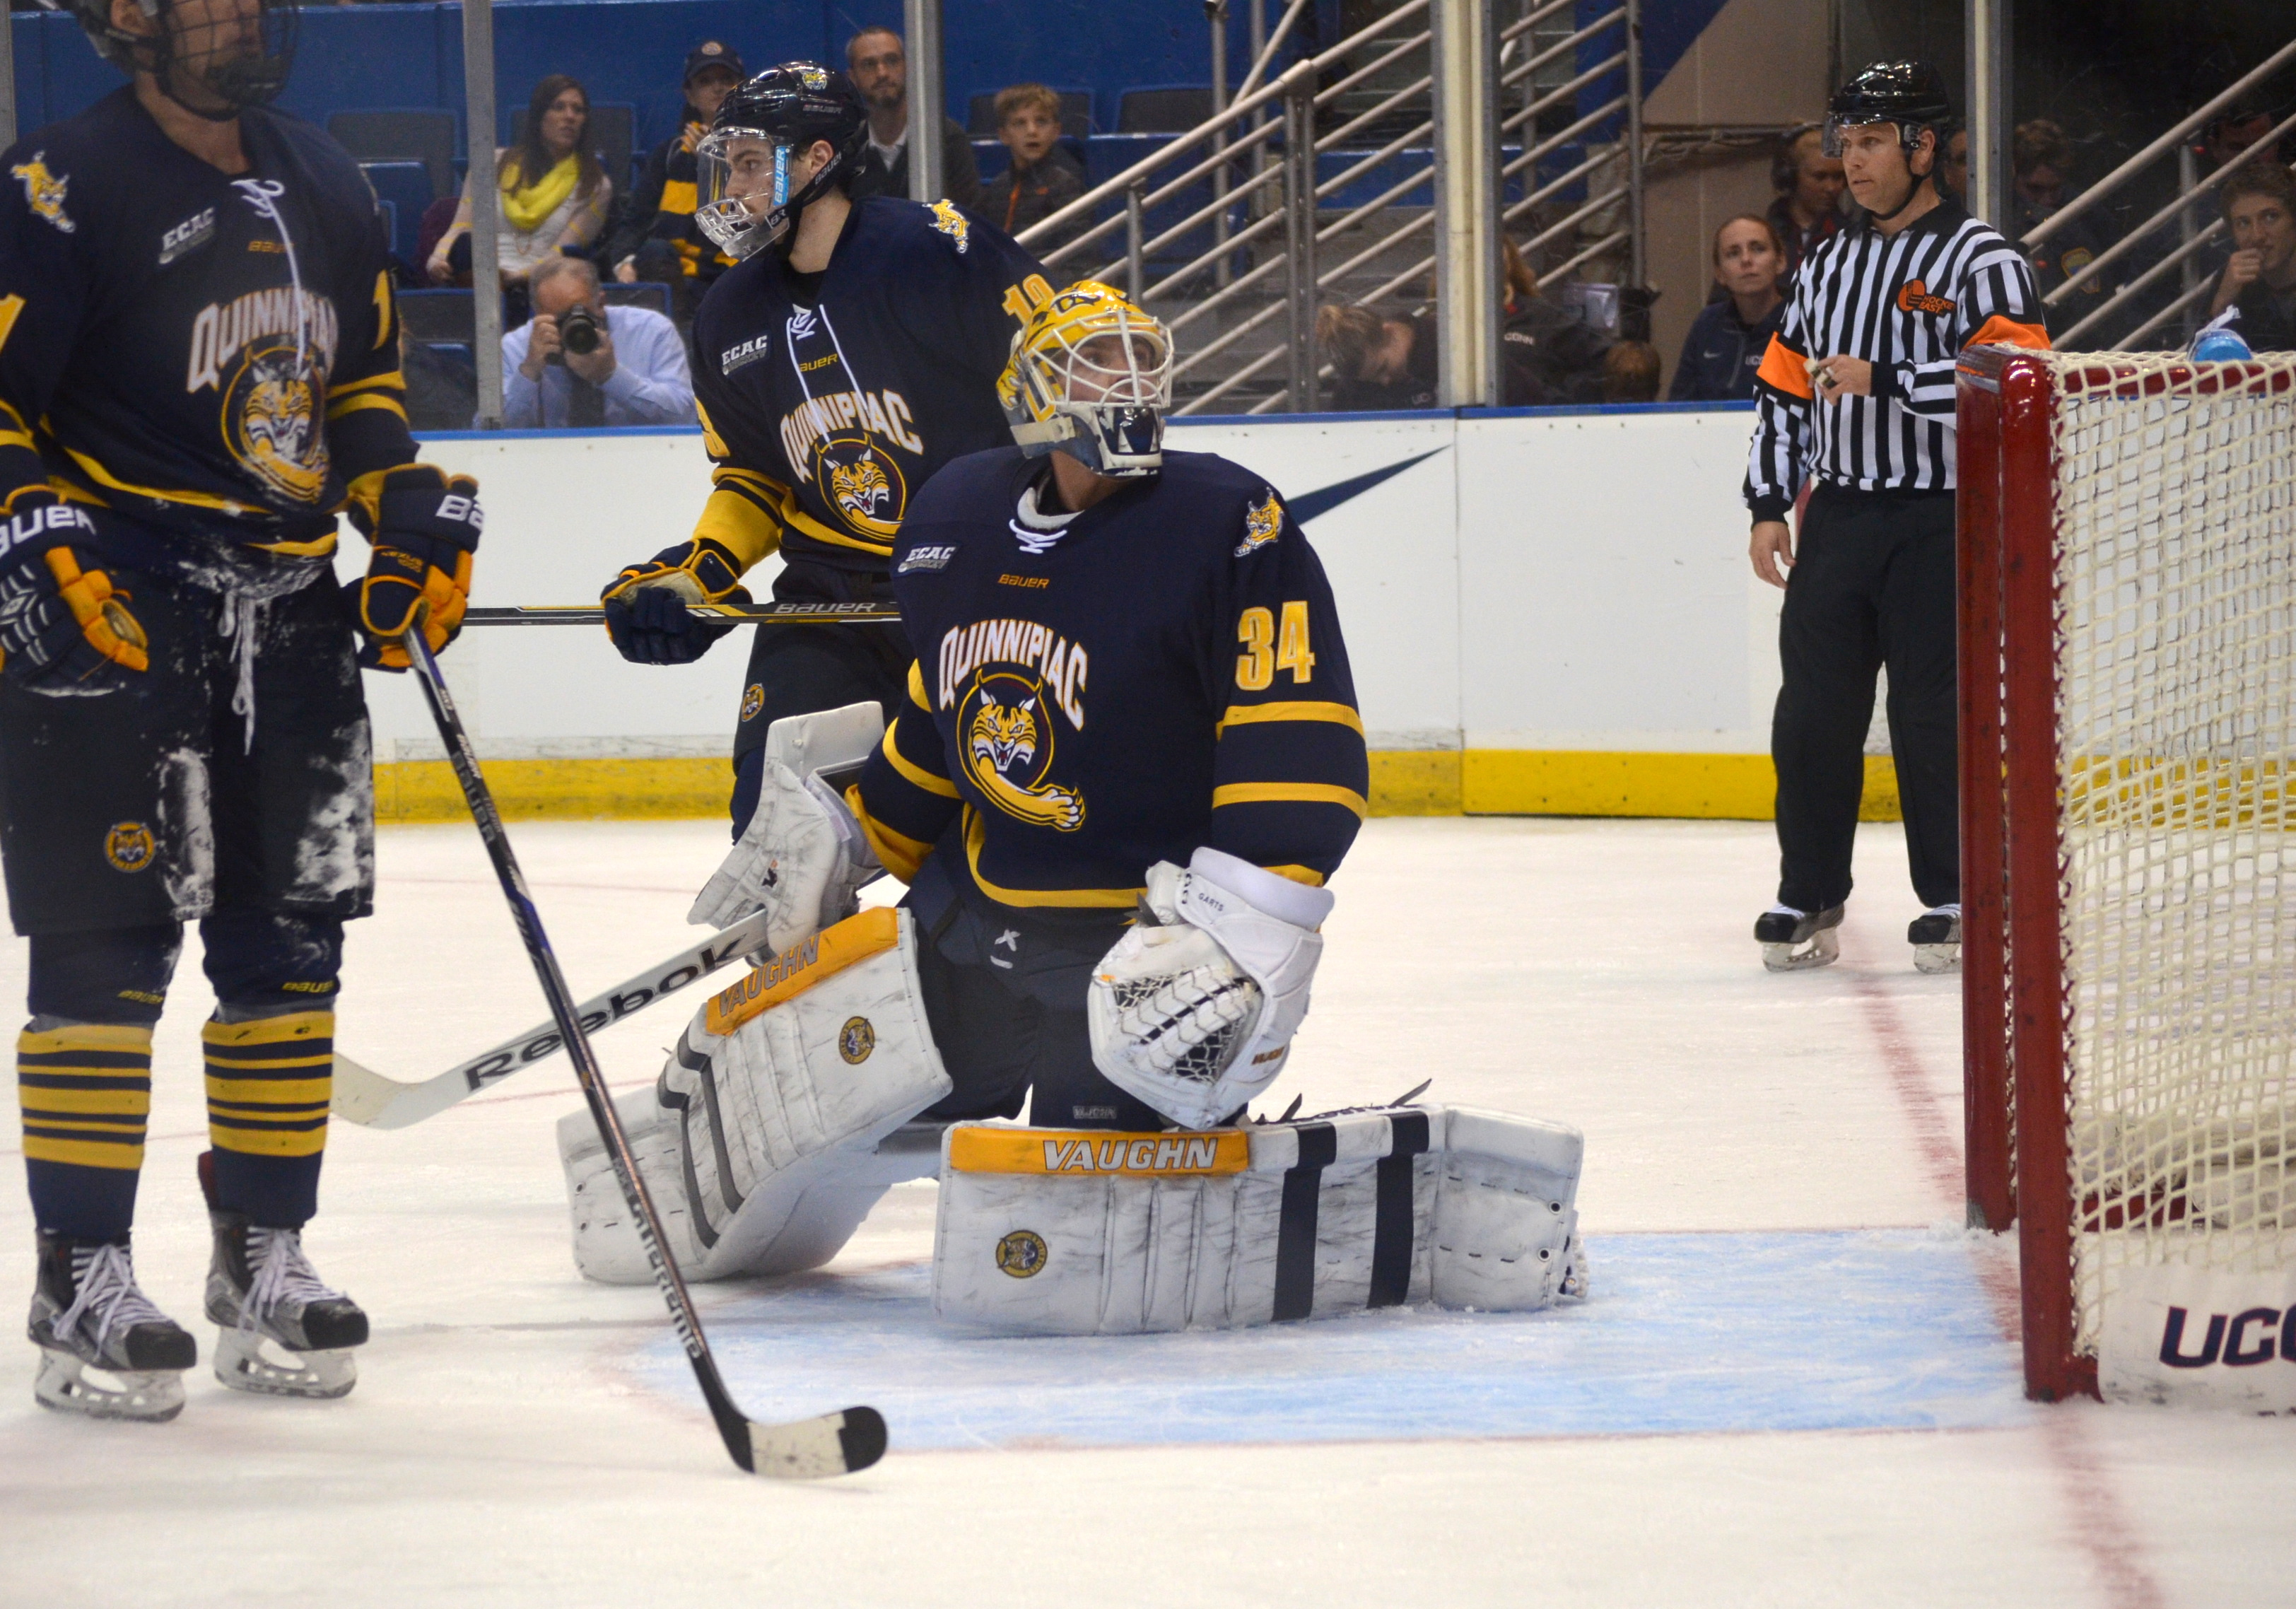 Jordan Novack|Quinnipiac Chronicle  Michael Garteig watches a shot he deflected fly over head vs UConn 11/17/15